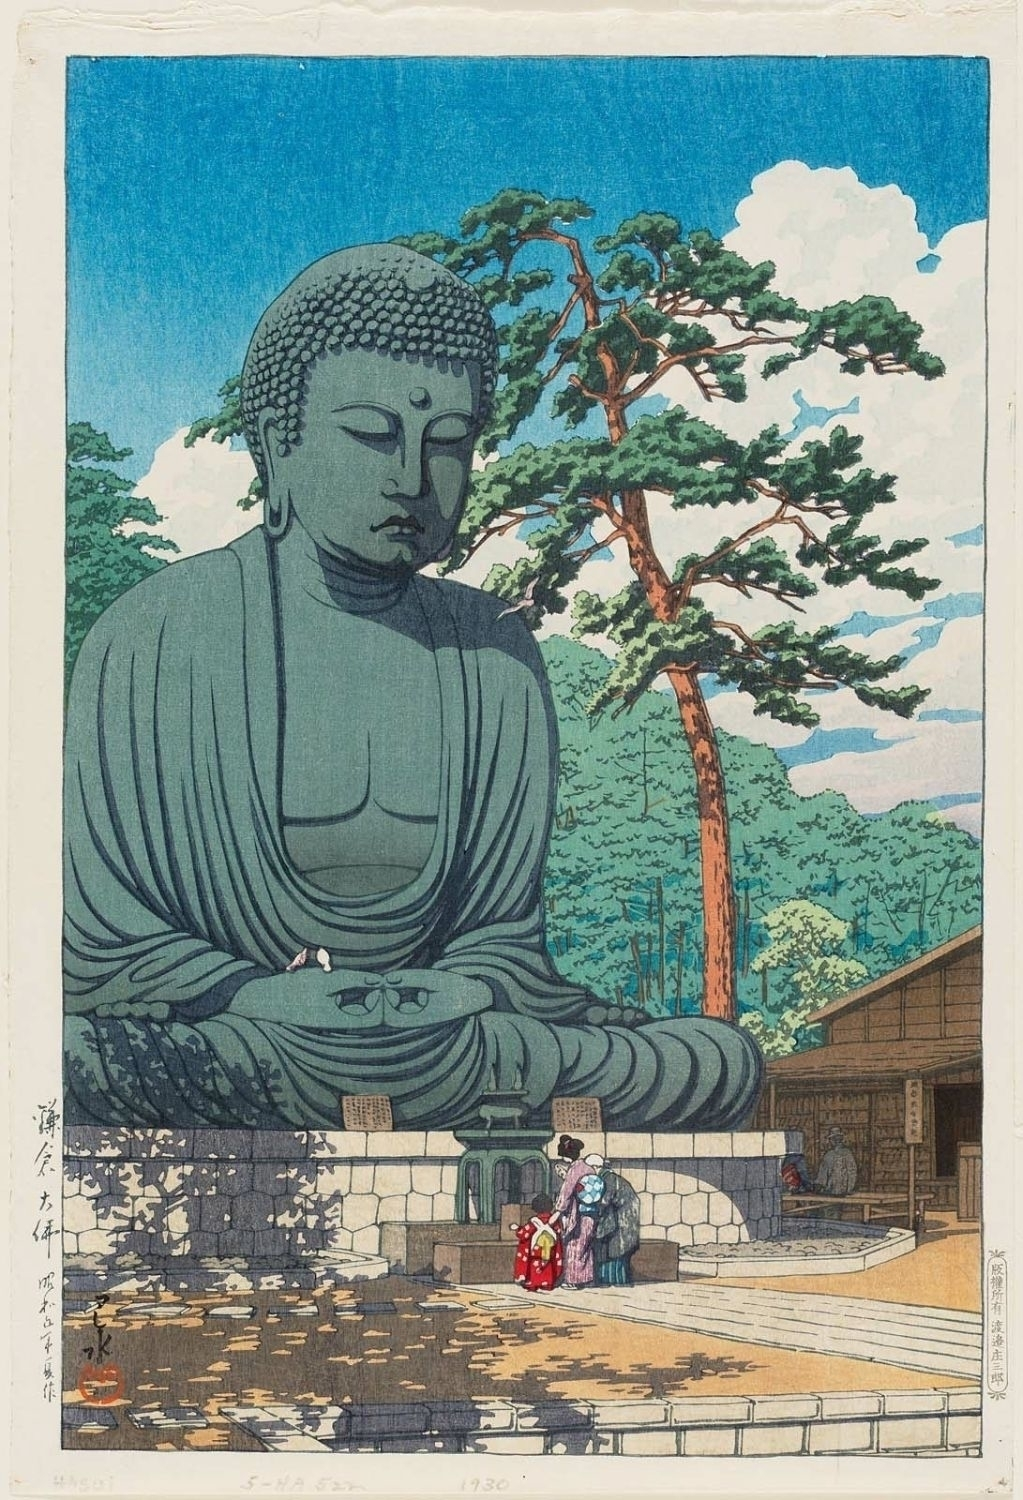 The Great Buddha of Kamakura by Kawase Hasui 1930 large.jpg